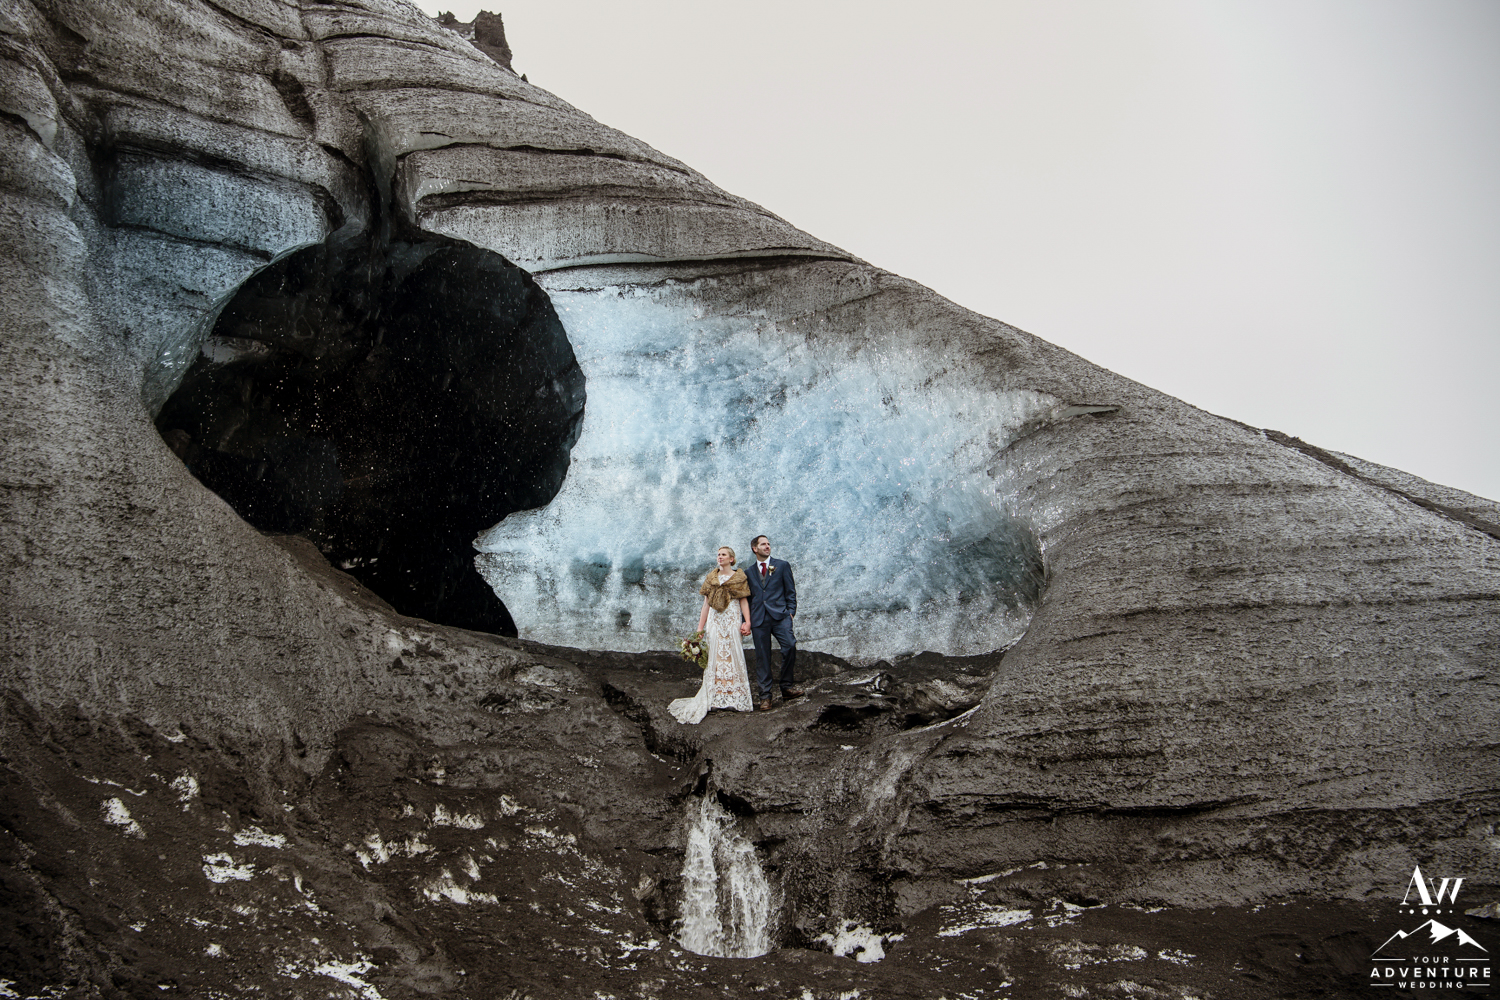 Eloping at an Ice Cave Elopement in Iceland